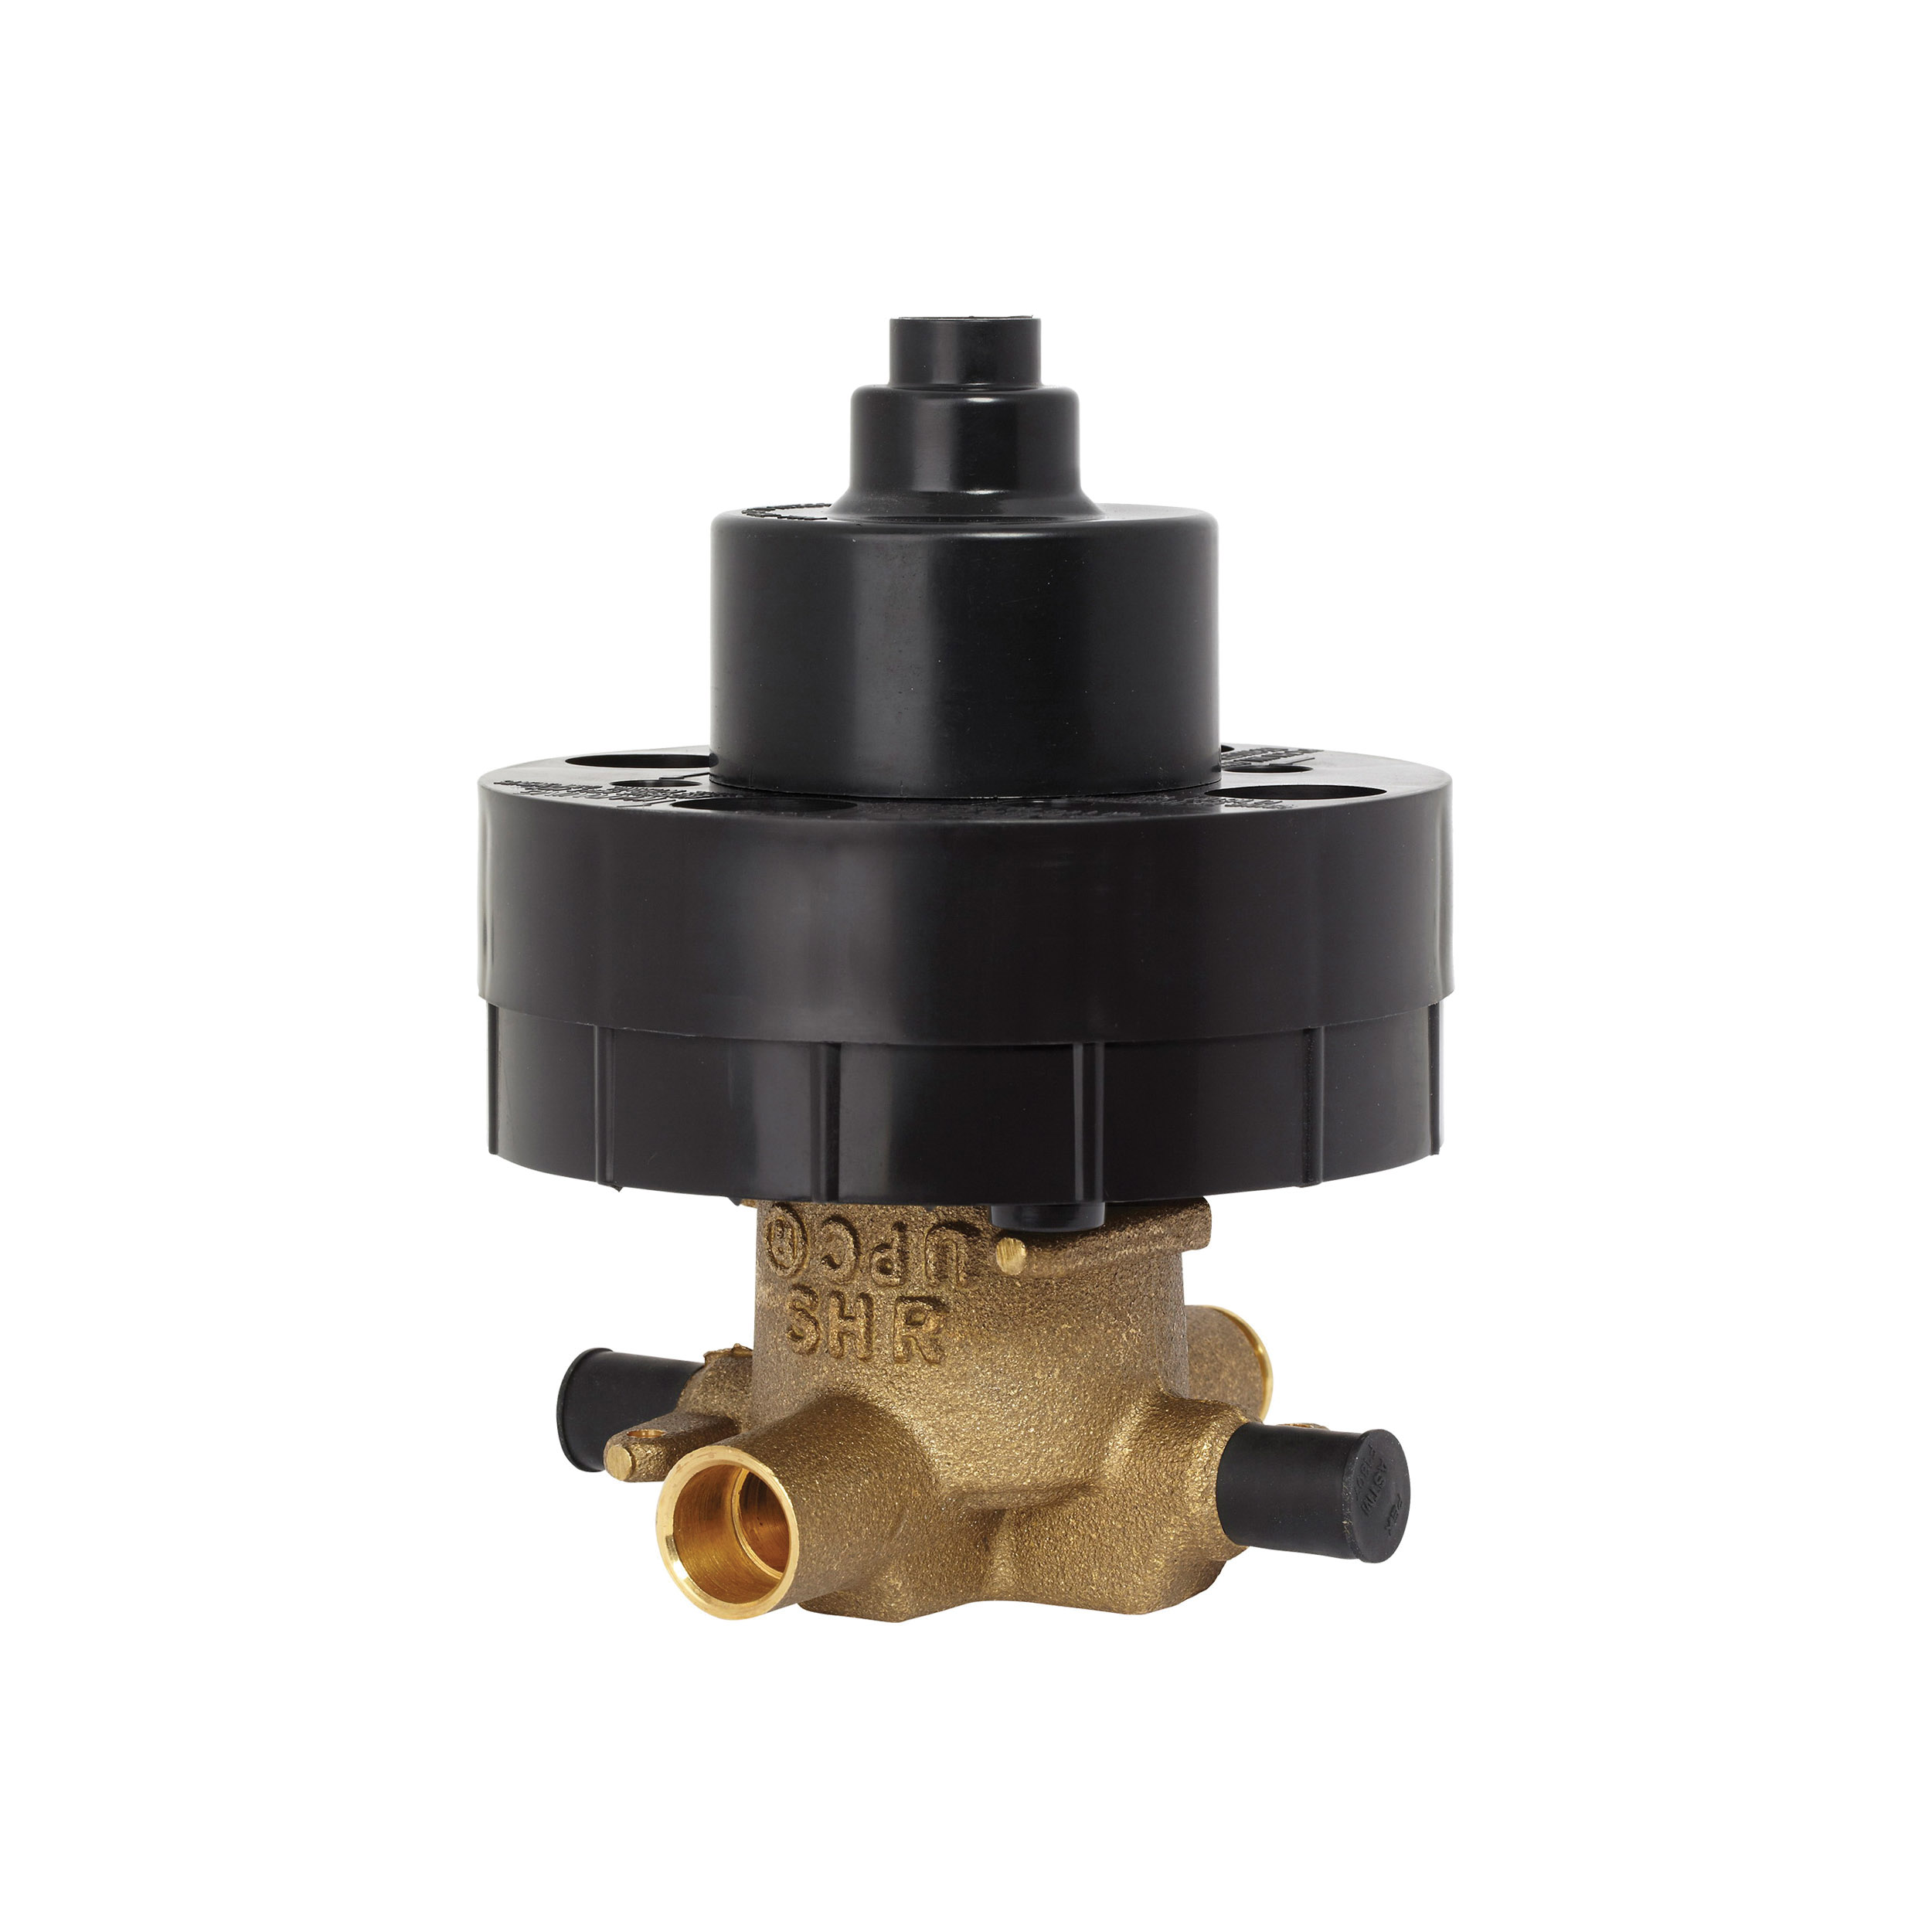 American Standard R127 Rough Valve Body, For Use With Princeton Pressure Balance Bath/Shower